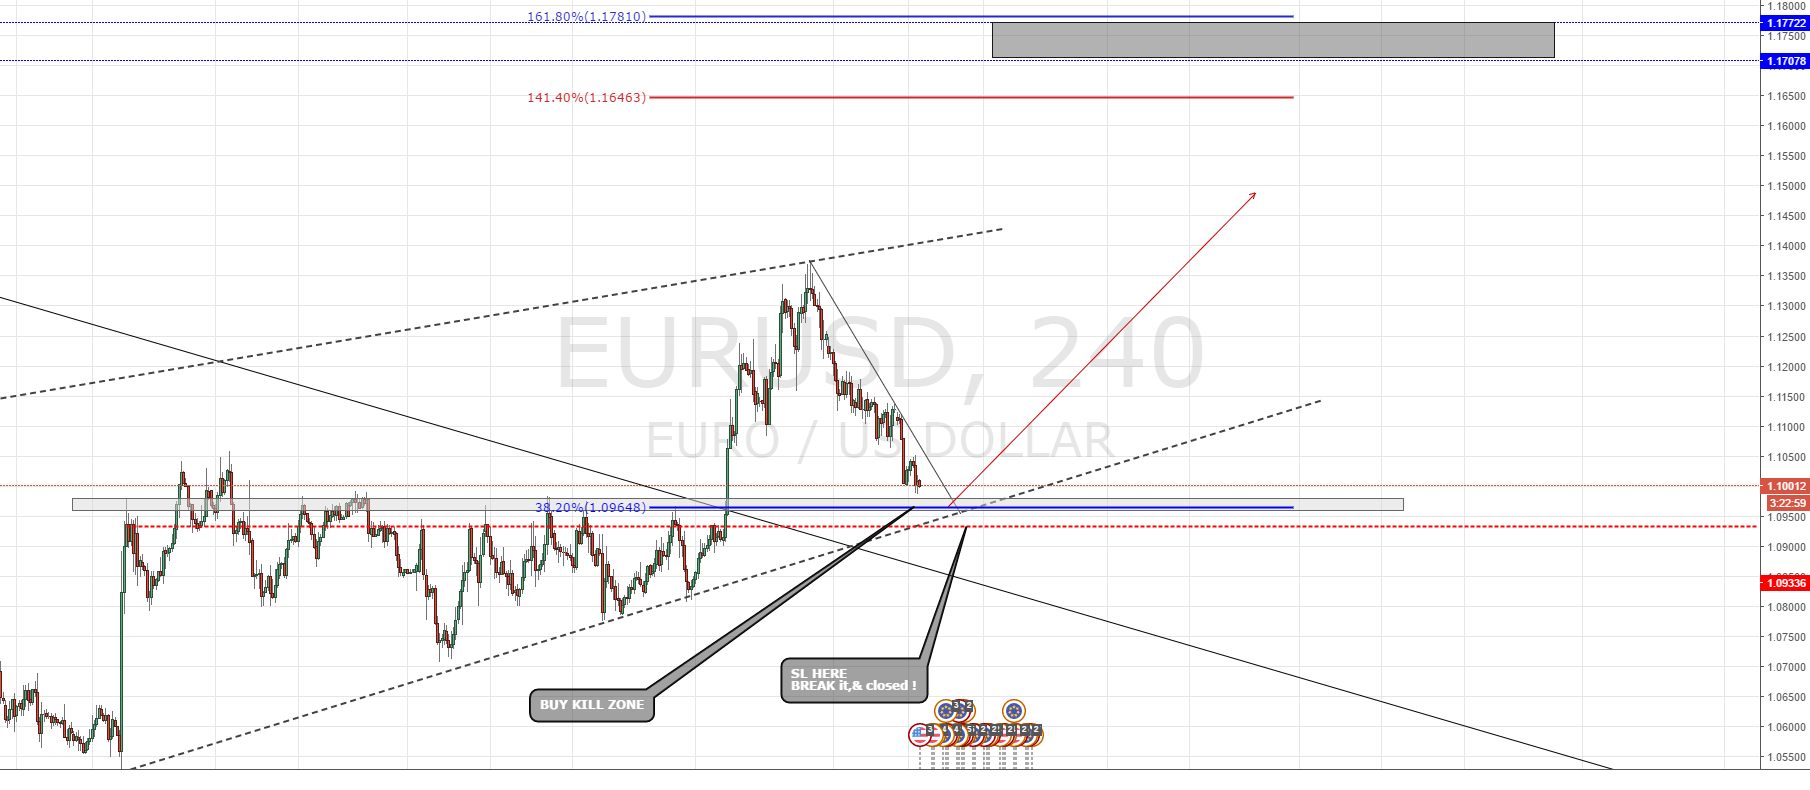 EURUSD possible to see a Sideline up move